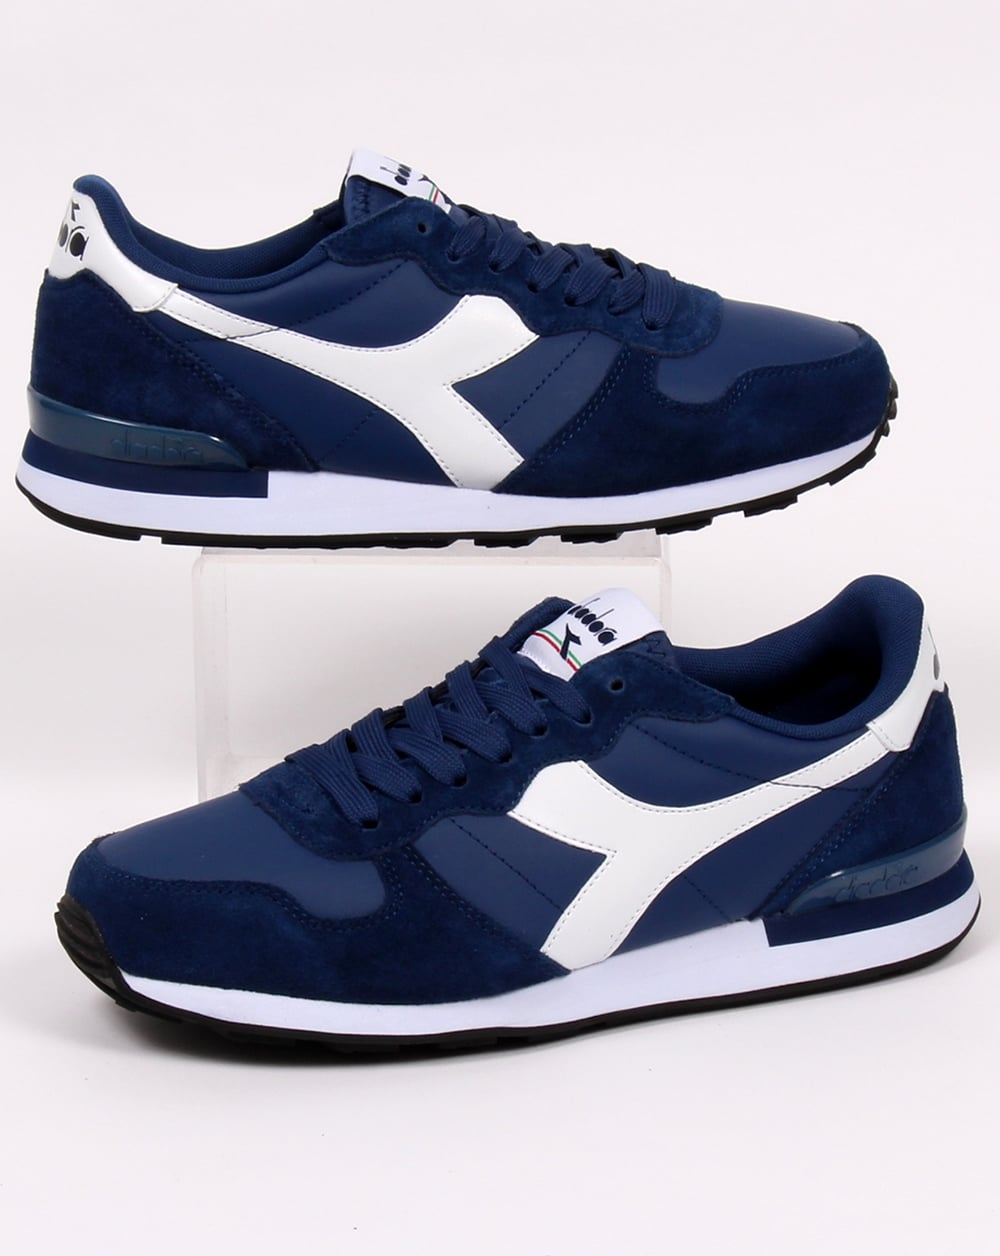 975a4d5a Diadora Camaro Leather Trainers Navy/white